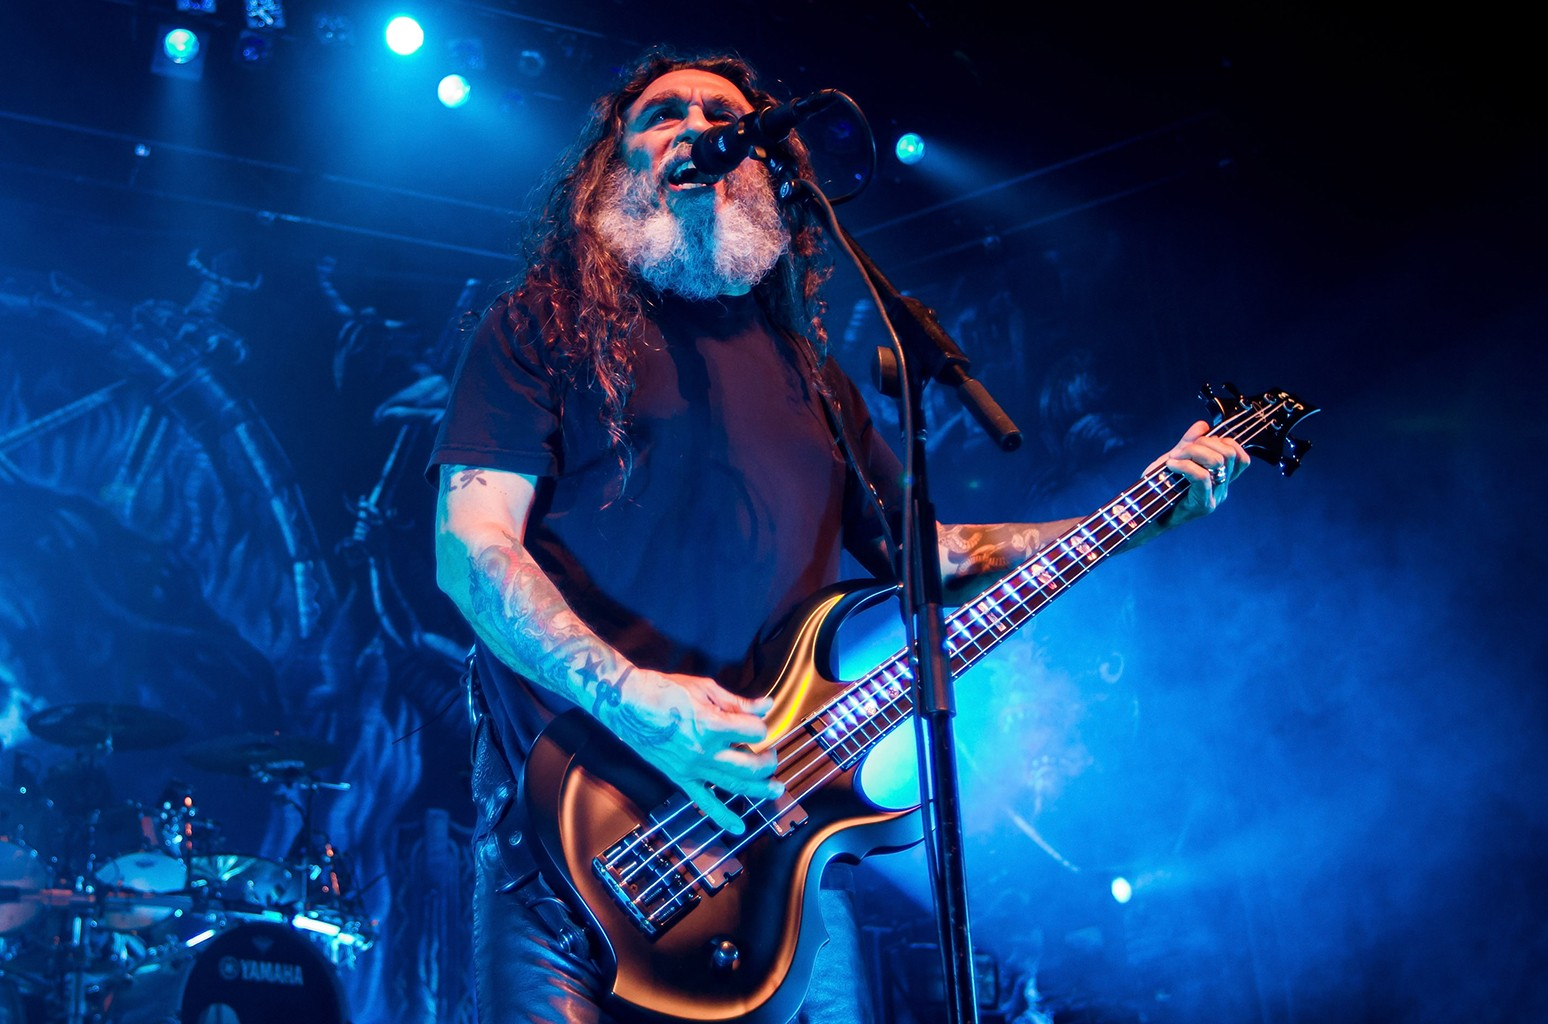 Tom Araya of Slayer performs at The Warfield on March 23, 2016 in San Francisco.